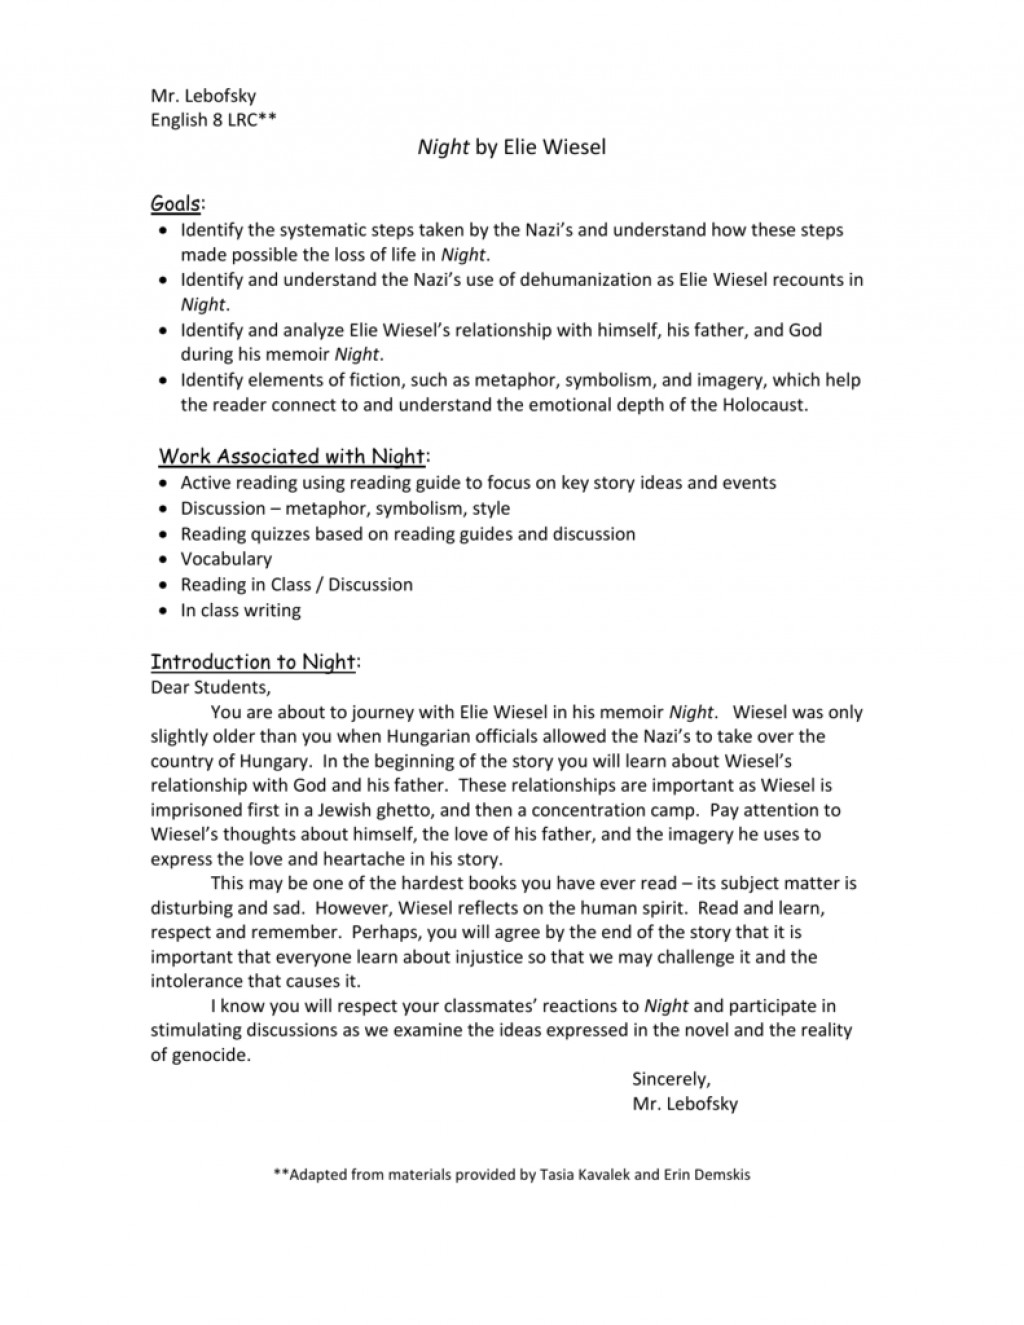 009 Essay Example 009753876 1 Night By Elie Fearsome Wiesel Examples Conclusion Large